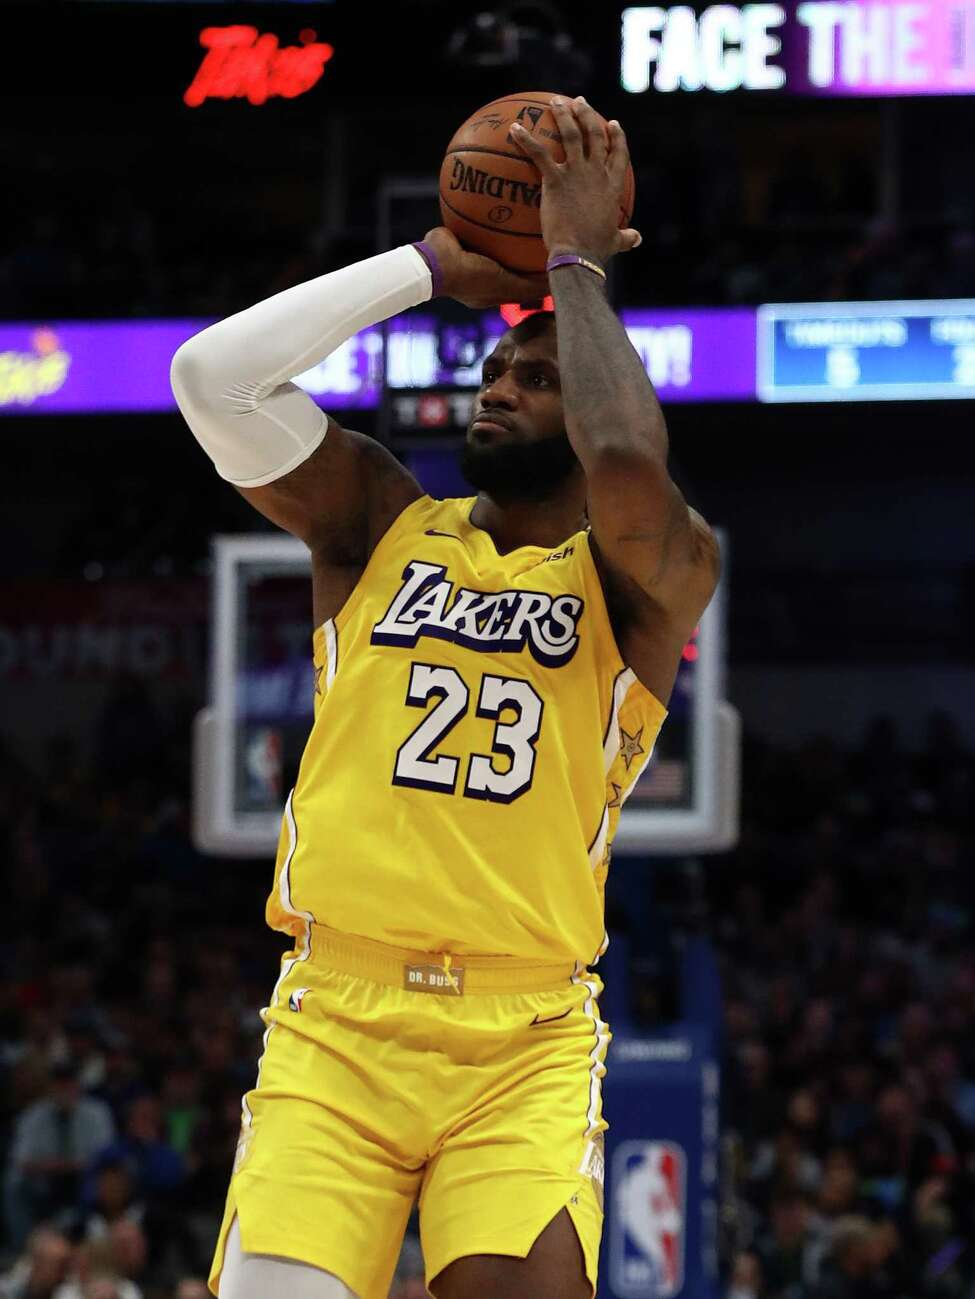 DALLAS, TEXAS - JANUARY 10: LeBron James #23 of the Los Angeles Lakers takes a shot against the Dallas Mavericks at American Airlines Center on January 10, 2020 in Dallas, Texas. NOTE TO USER: User expressly acknowledges and agrees that, by downloading and or using this photograph, User is consenting to the terms and conditions of the Getty Images License Agreement. (Photo by Ronald Martinez/Getty Images)